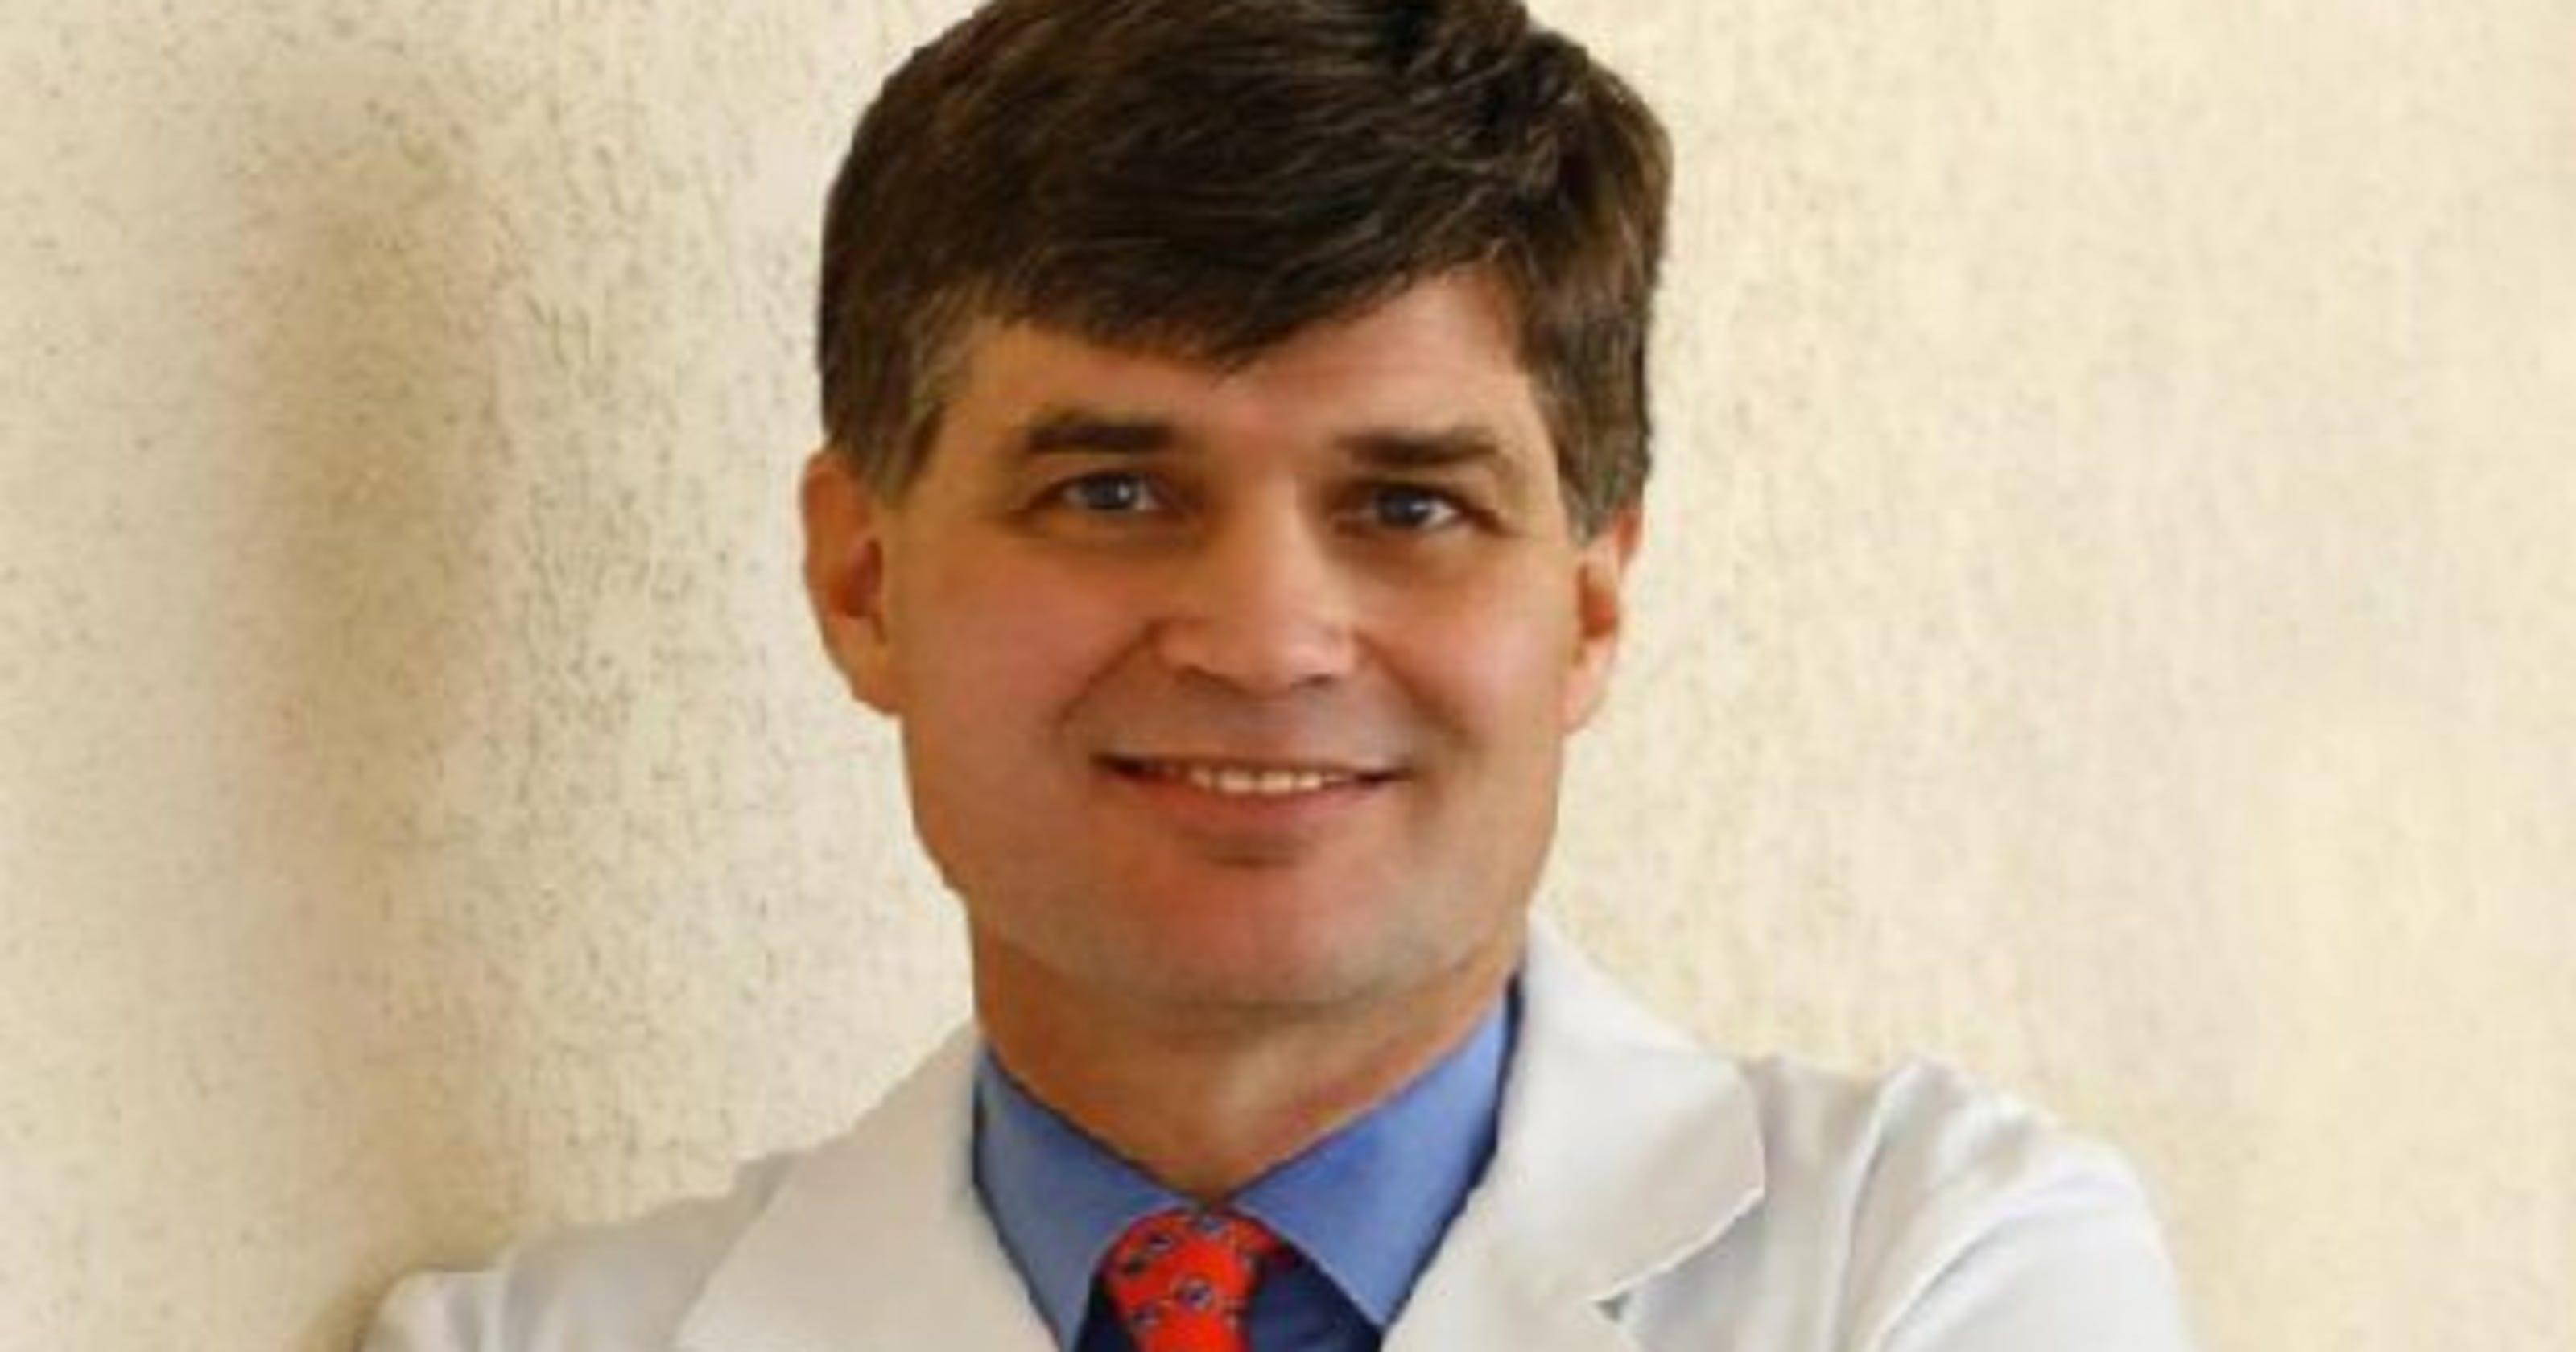 Ann Arbor cardiologist wants to replace Dave Agema on RNC